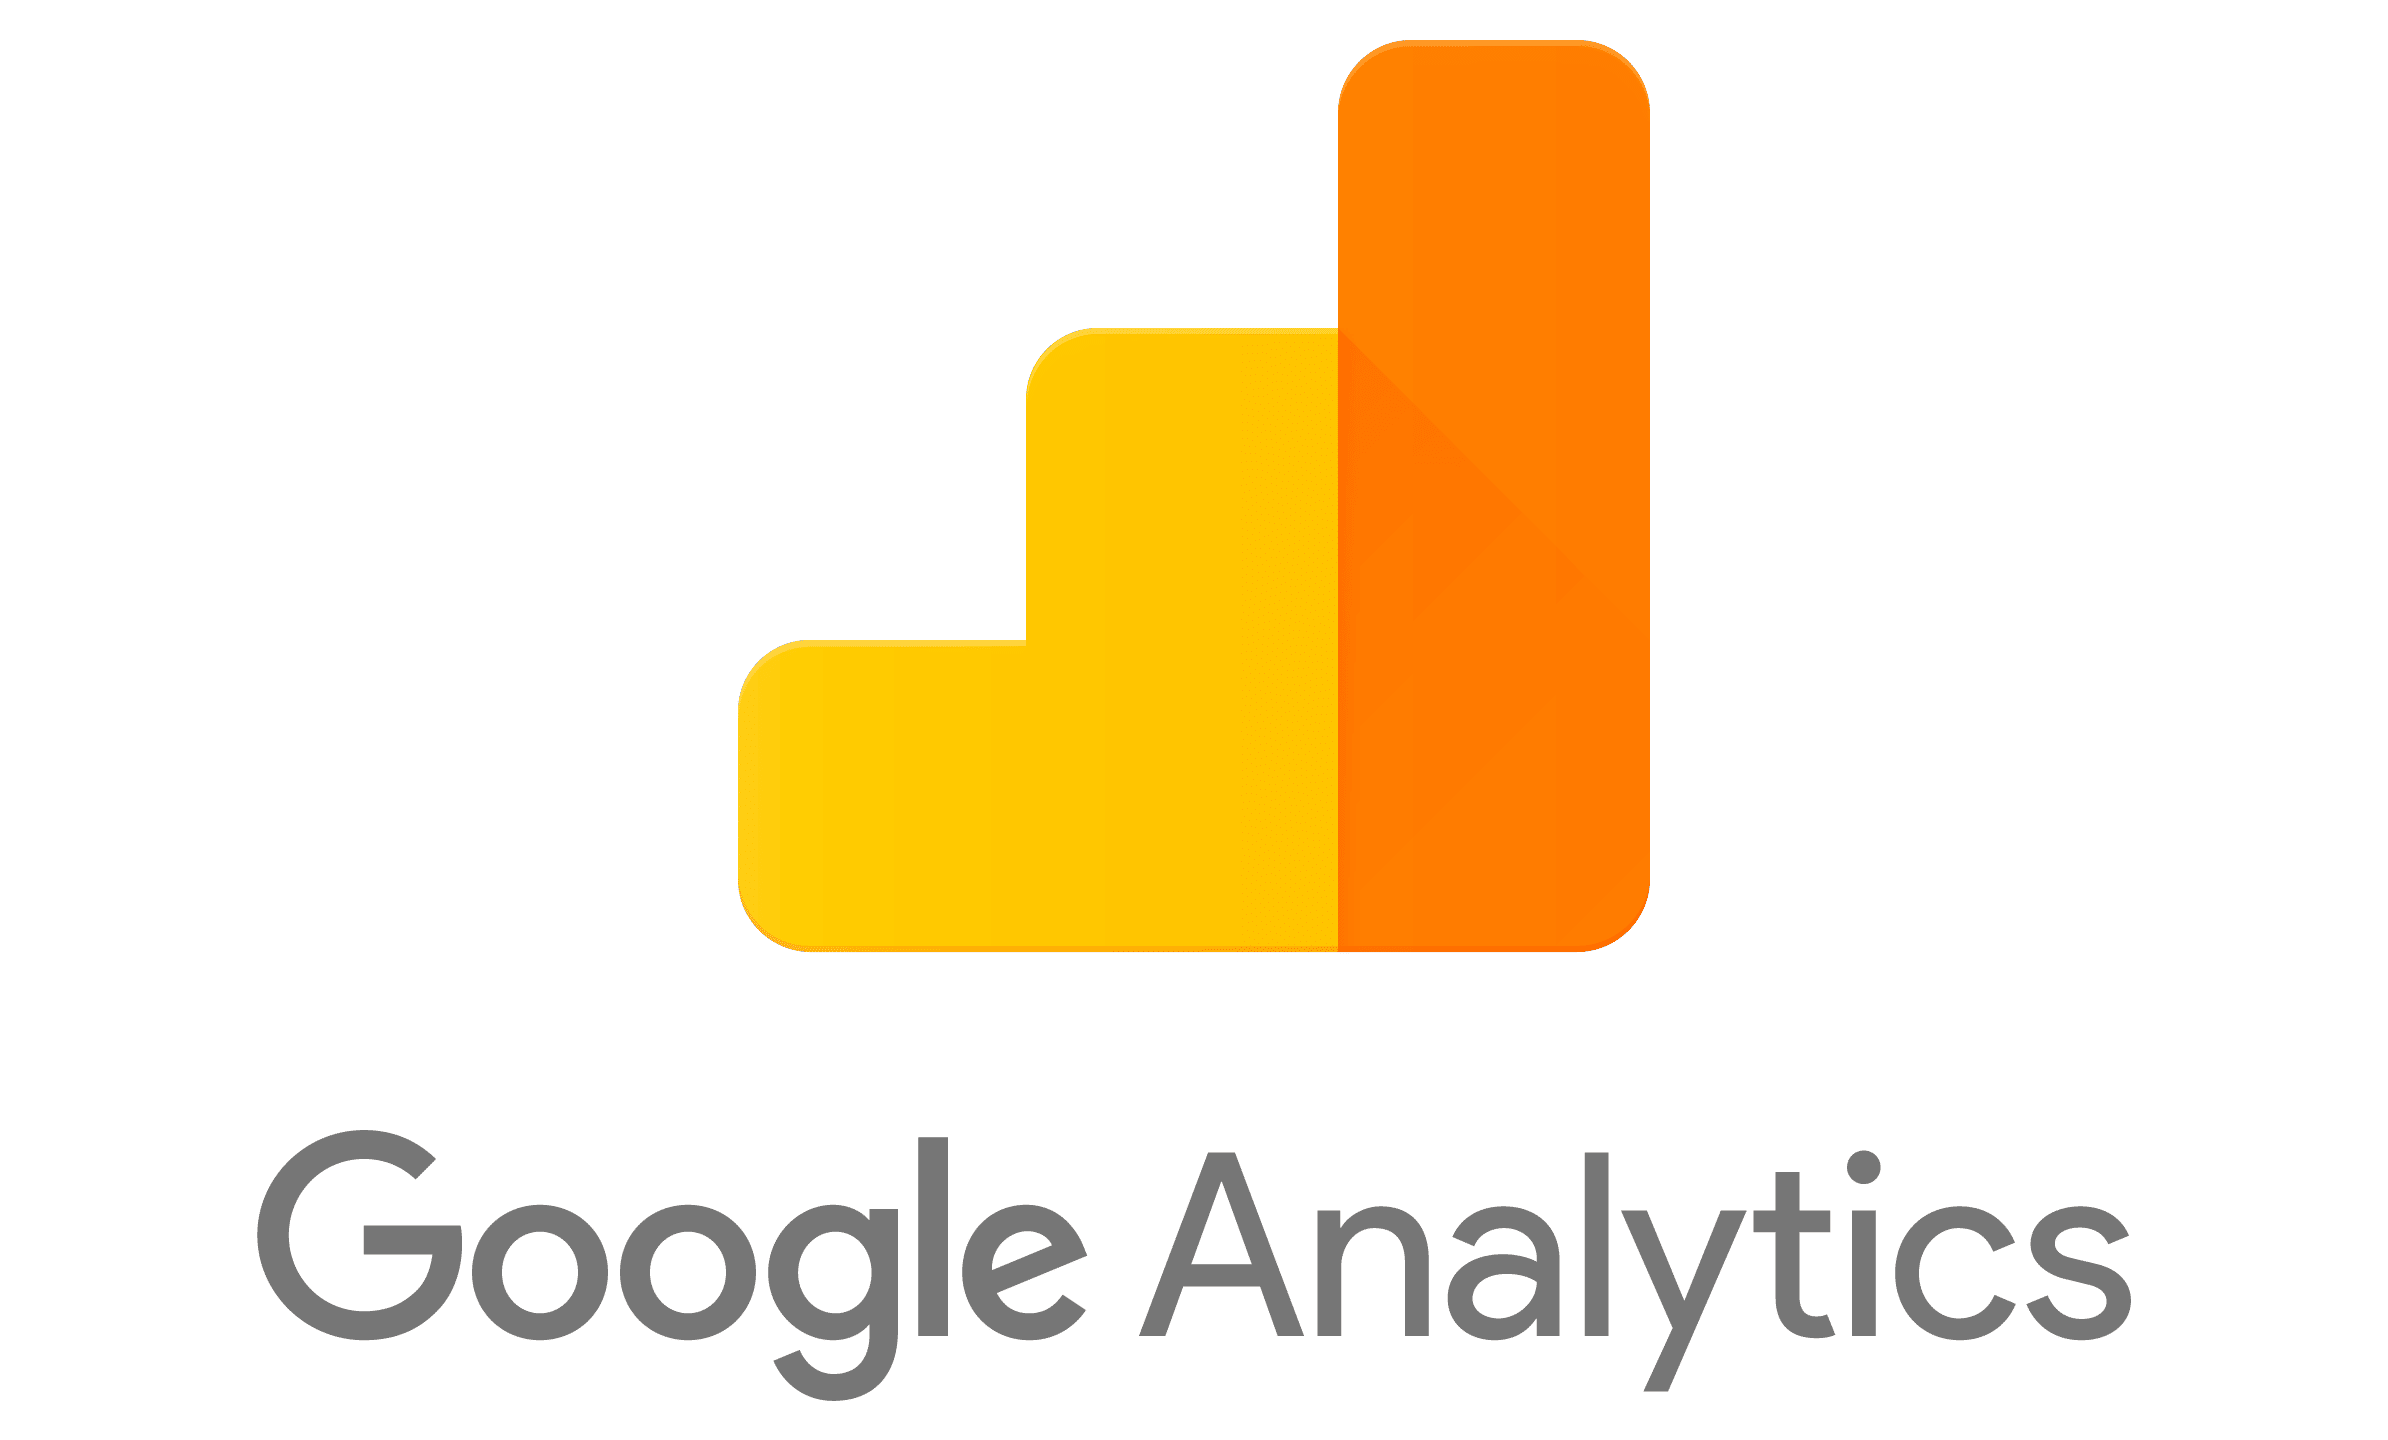 certificado de google analytics lauradelva